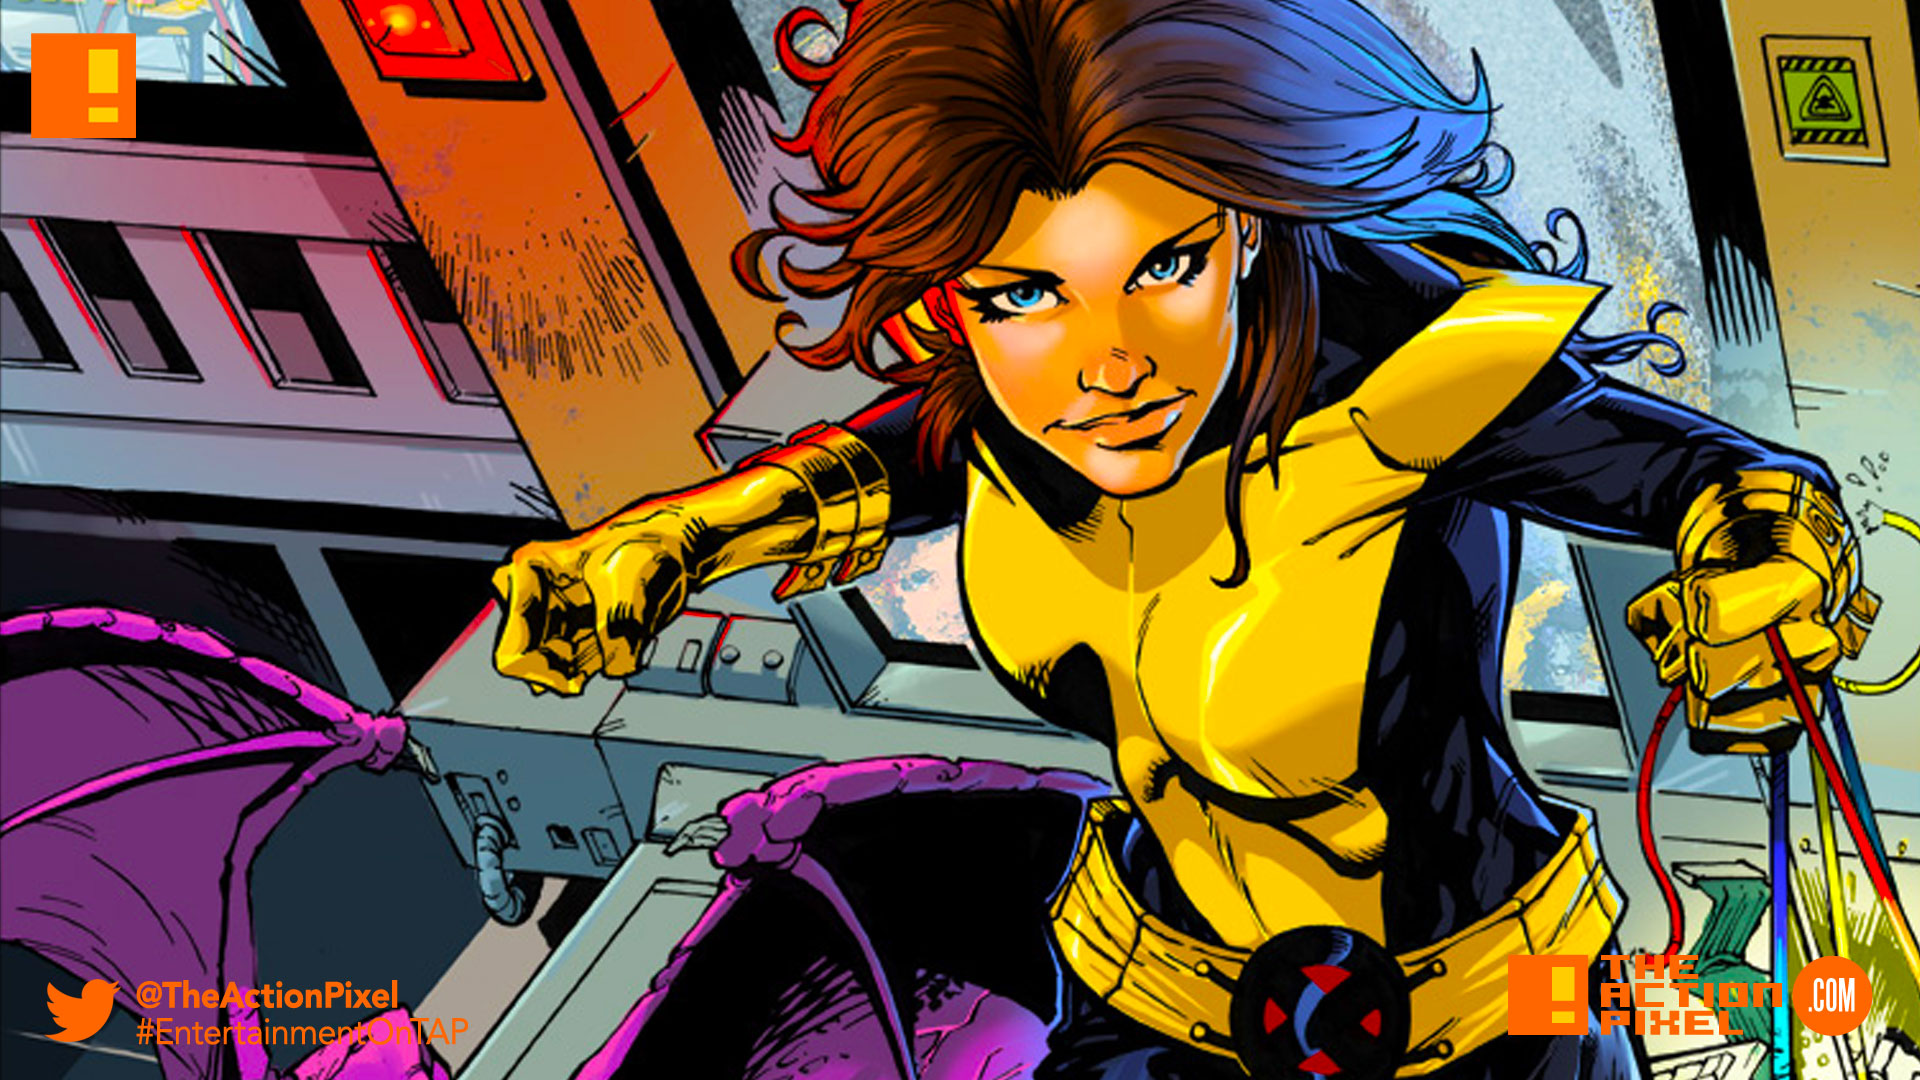 kitty pryde, fox, tim miller, 20th century fox, marvel,x-men, the action pixel